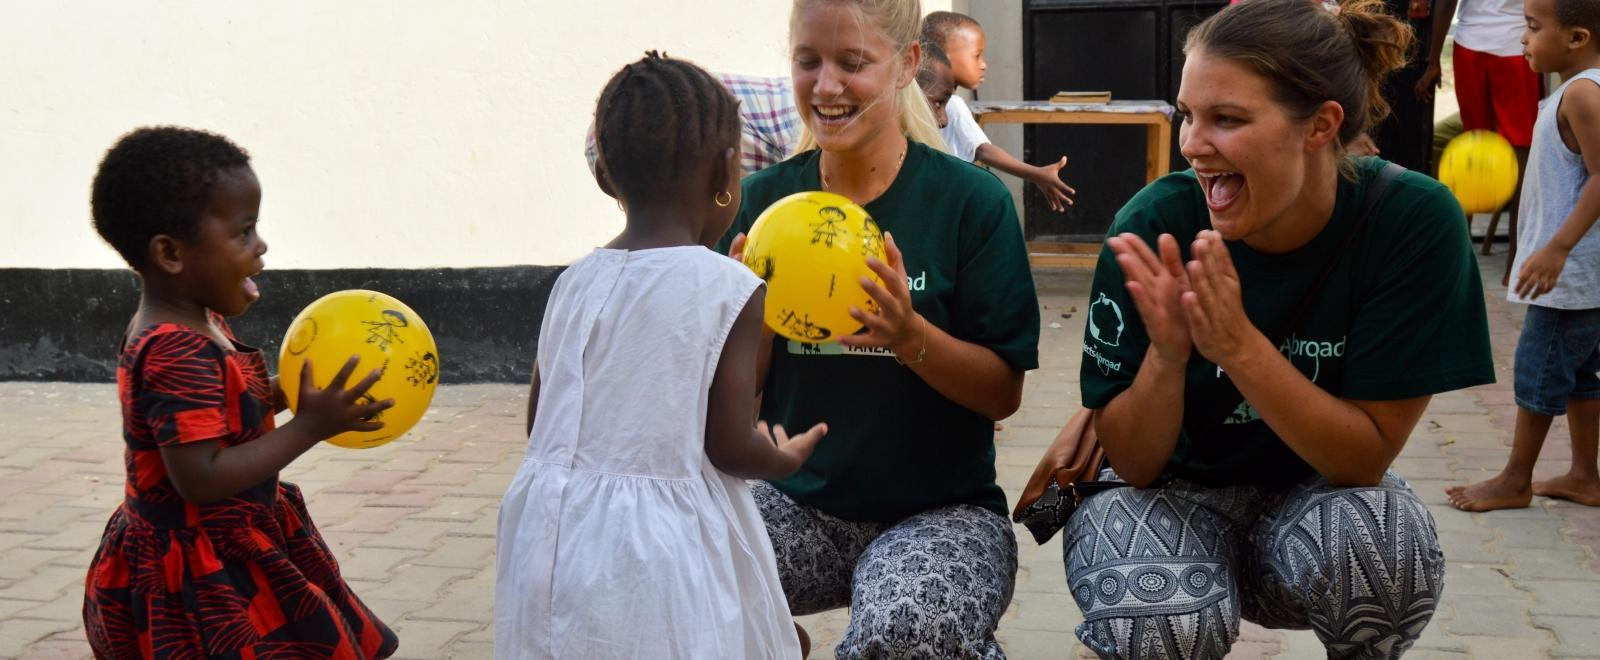 Voluntarias de Projects Abroad juegan a la pelota con niños de una guardería en lugar de un voluntariado en orfanatos